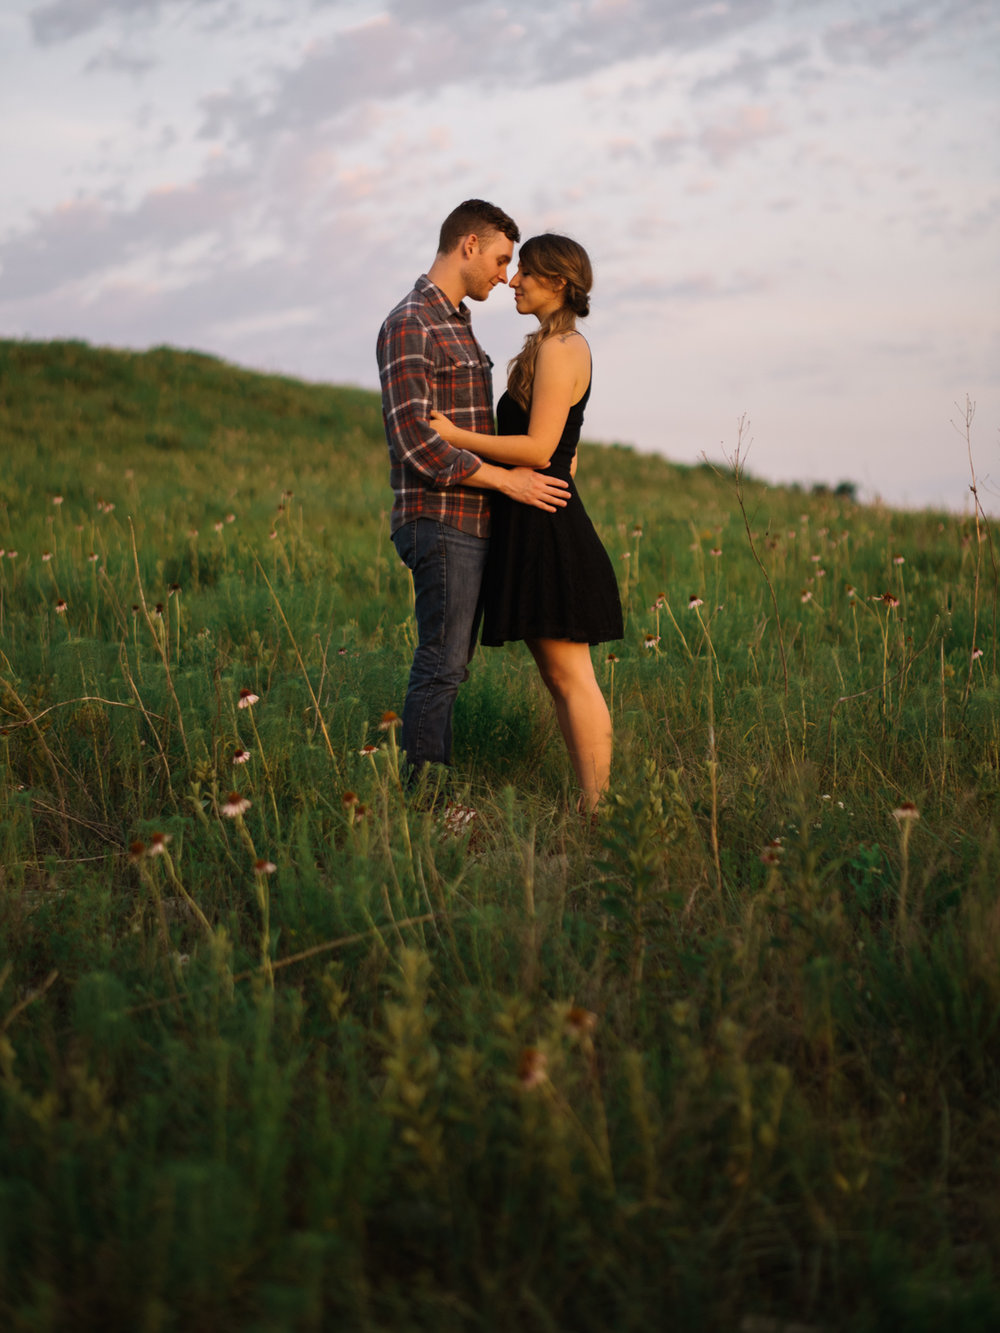 Wichita, Kansas Photographer-Neal Dieker-Wichita, Ks Wedding Photography-Wichita, Kansas Engagement Photography-Flint Hills, Kansas-140.jpg